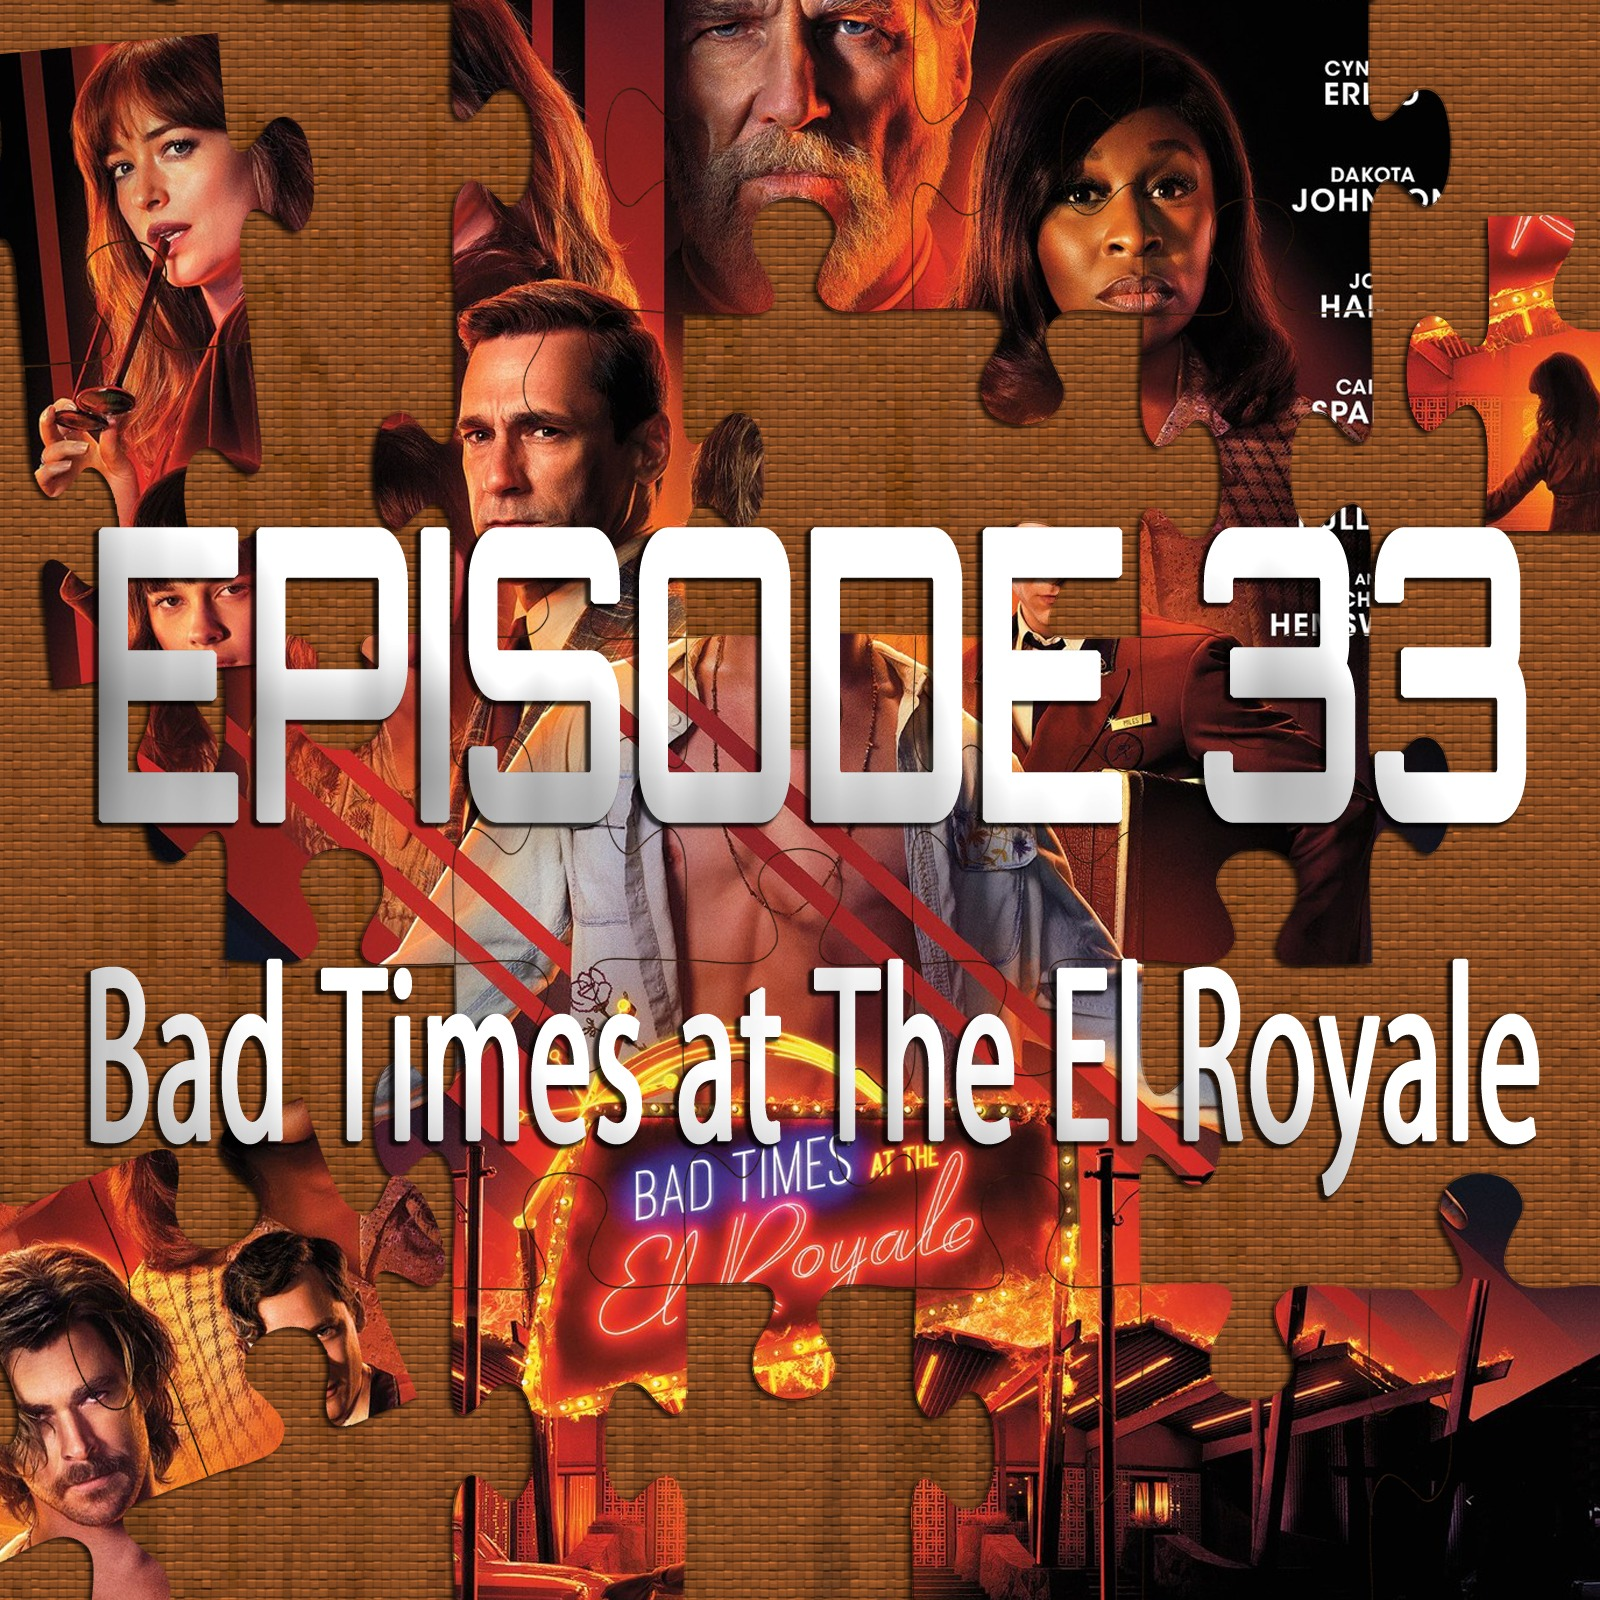 Bad Times at the El Royale (Featuring Ryan Daugherty)